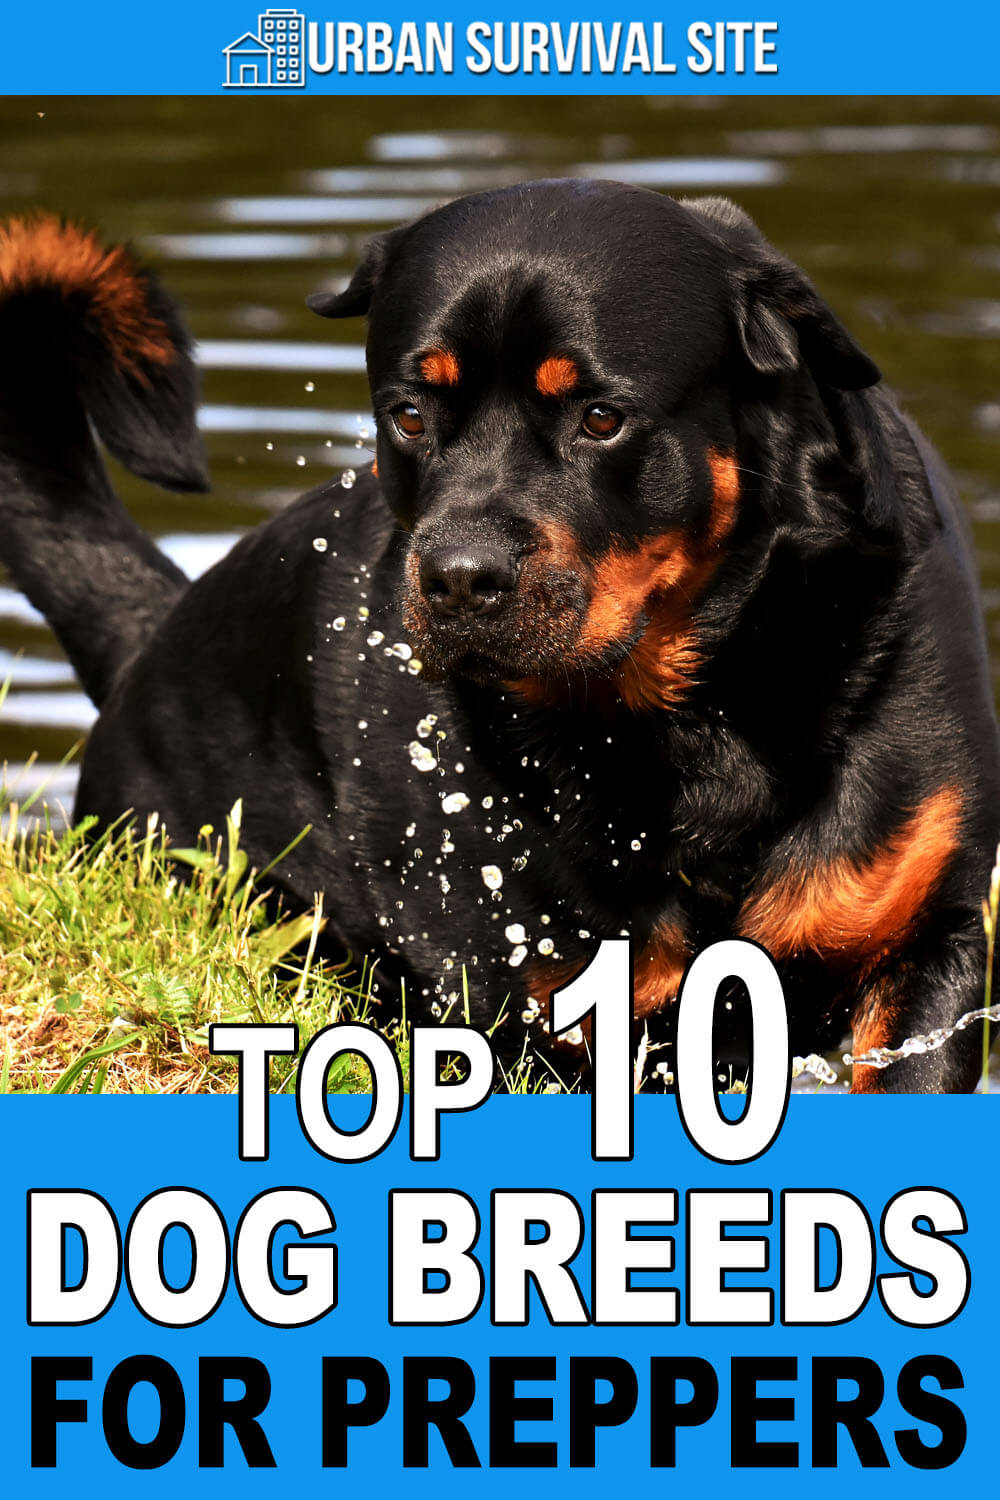 Top 10 Dog Breeds For Preppers